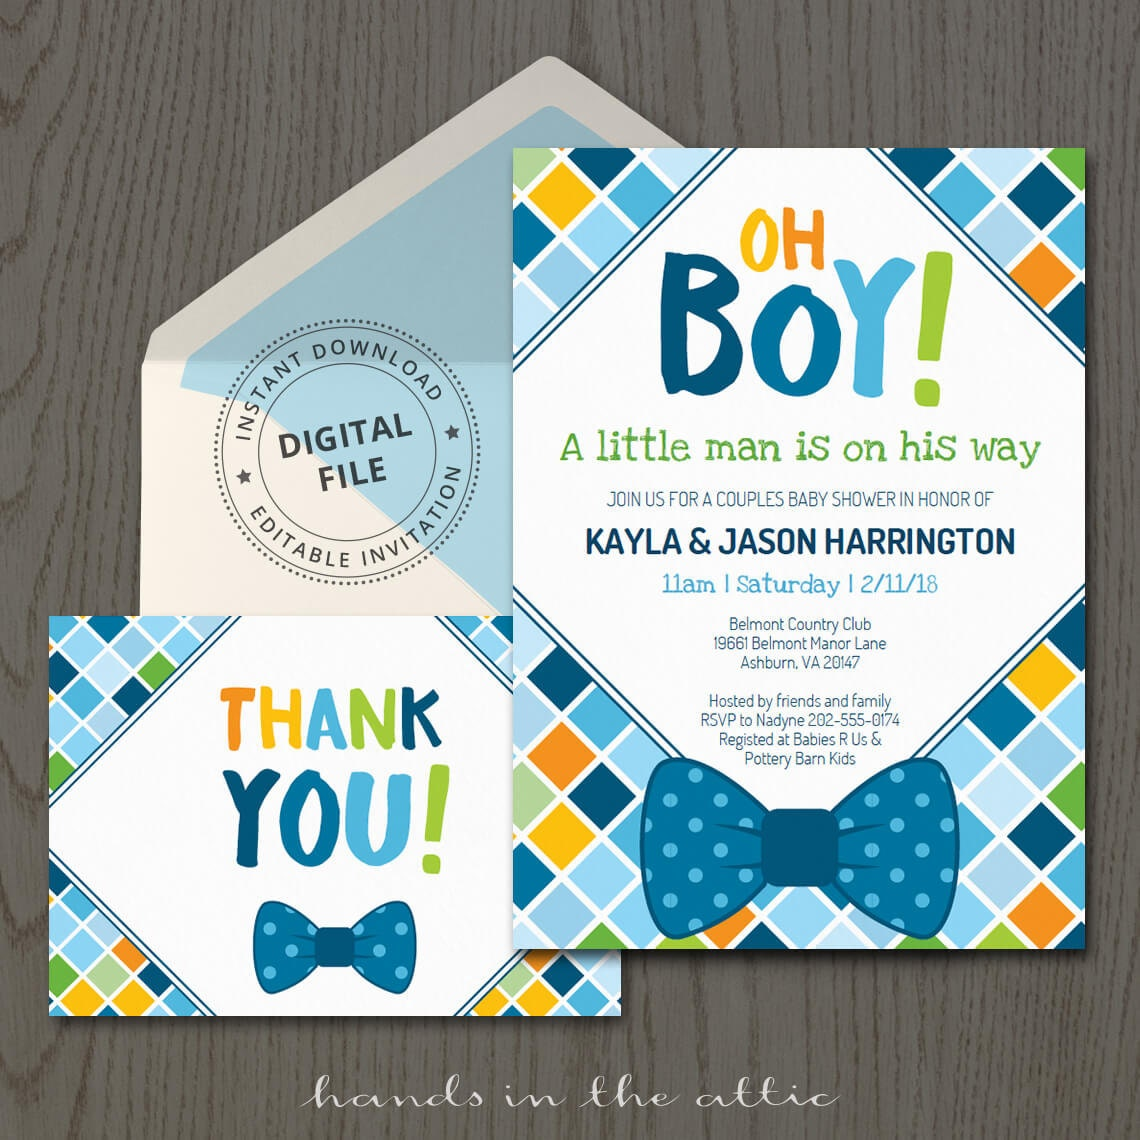 bow tie baby shower invitations themed baby boy invitation. Black Bedroom Furniture Sets. Home Design Ideas